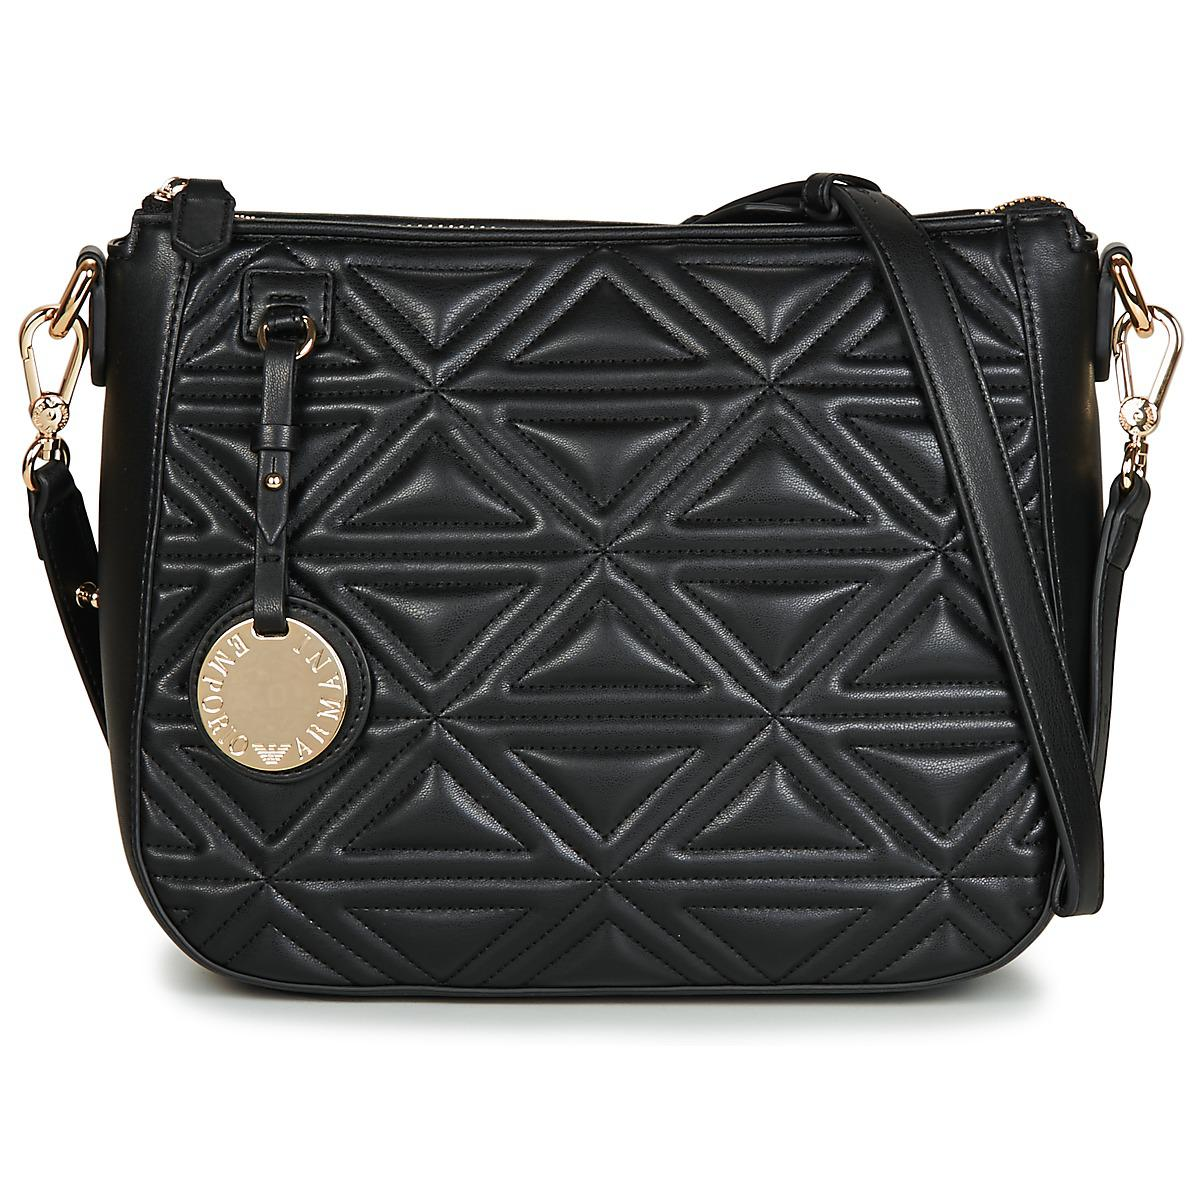 228d1eeb897 Emporio Armani - Black ELOISE SHOPPING BAG femmes Sac à main en Noir for  Men -. Afficher en plein écran